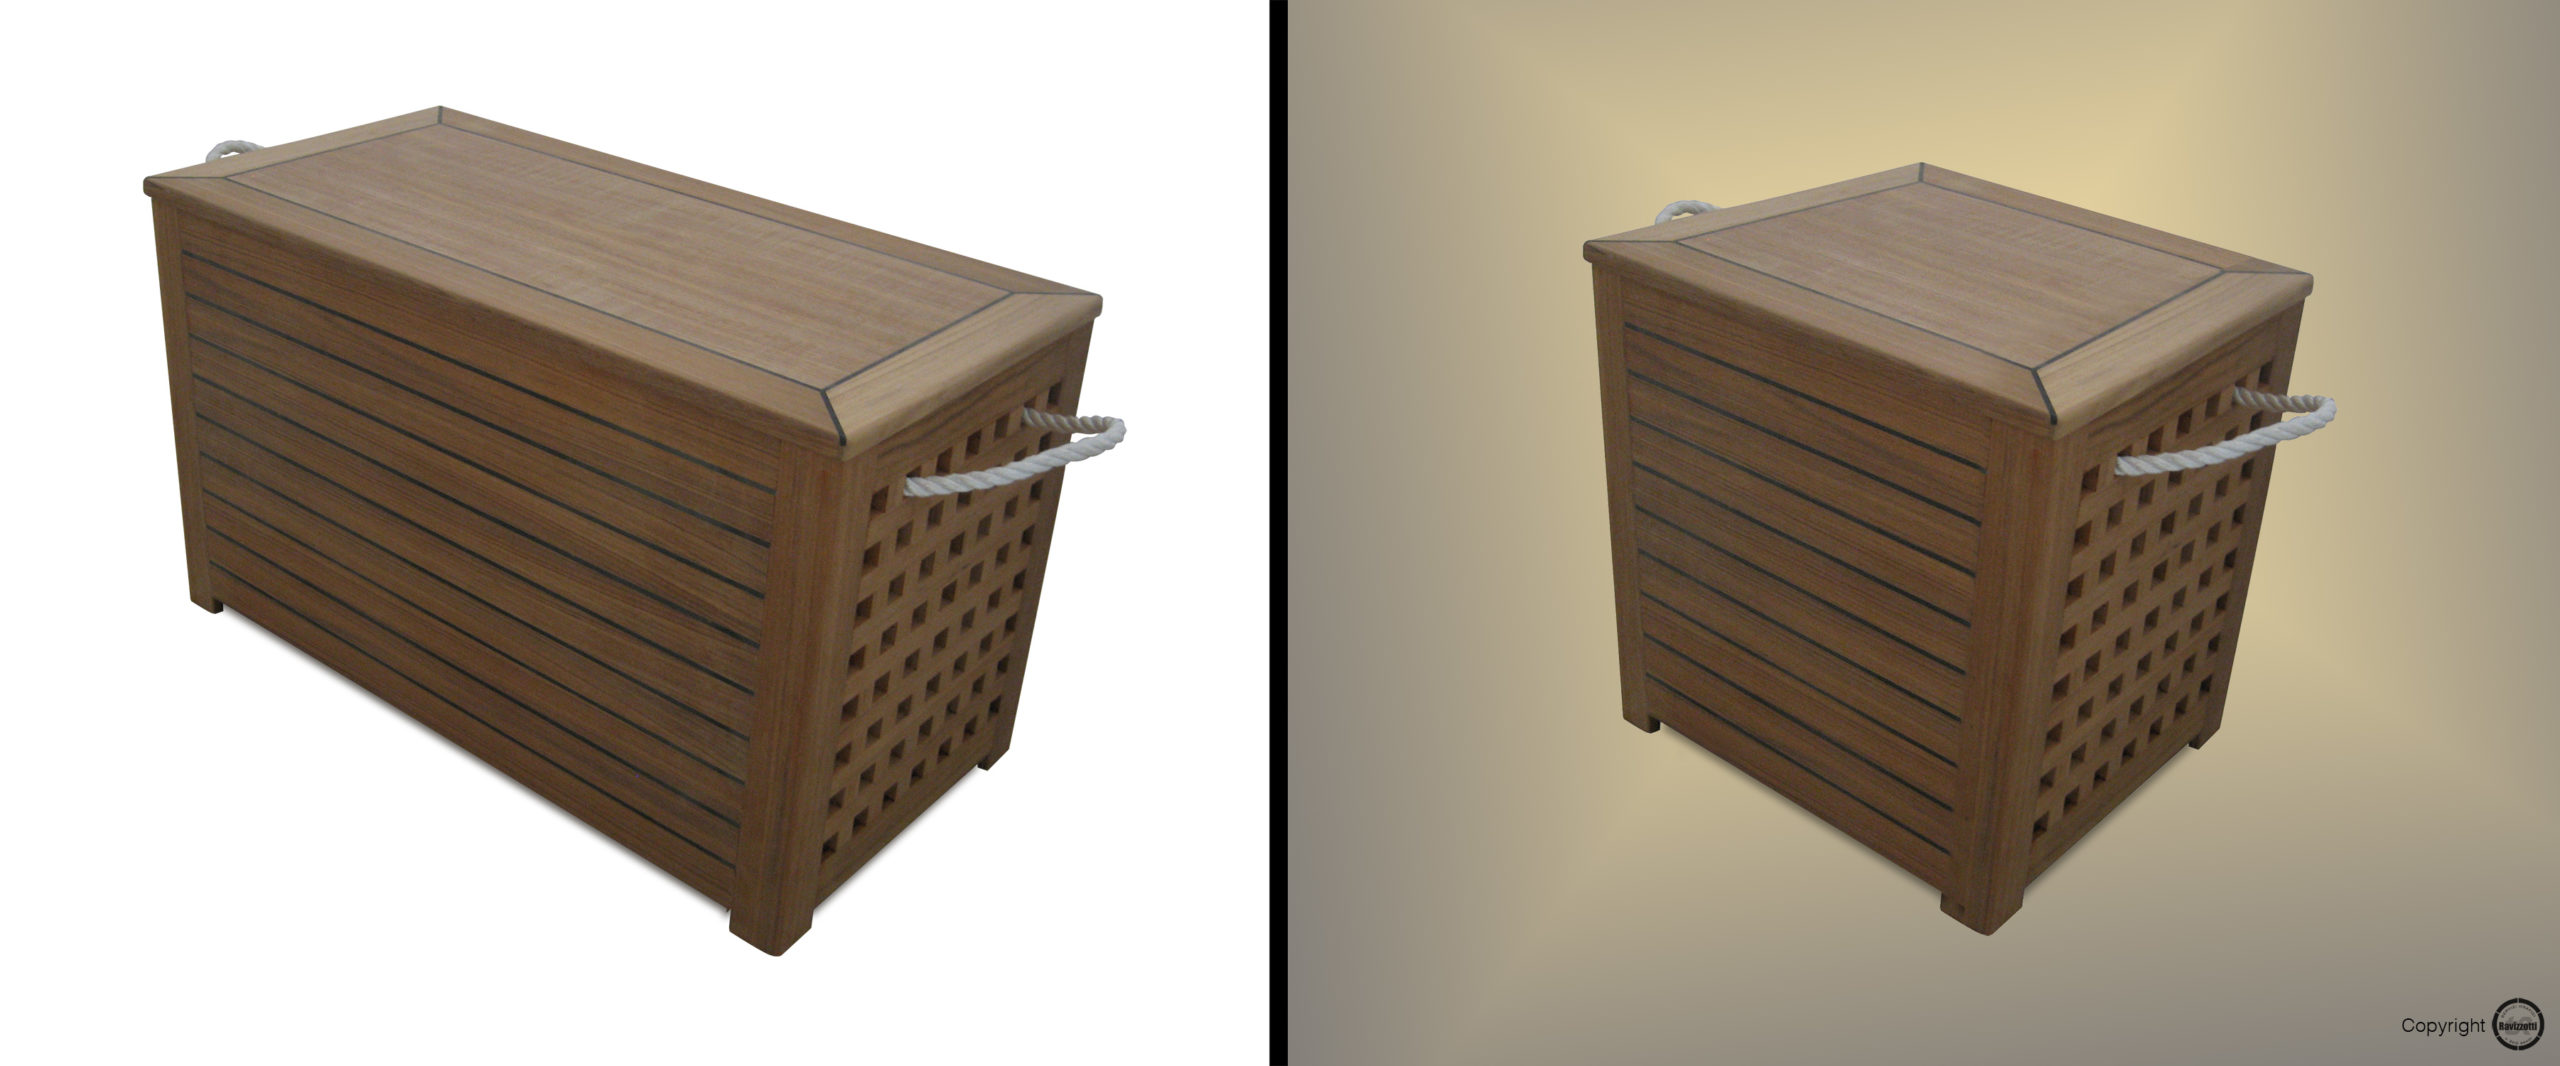 Storage chest prima e dopo